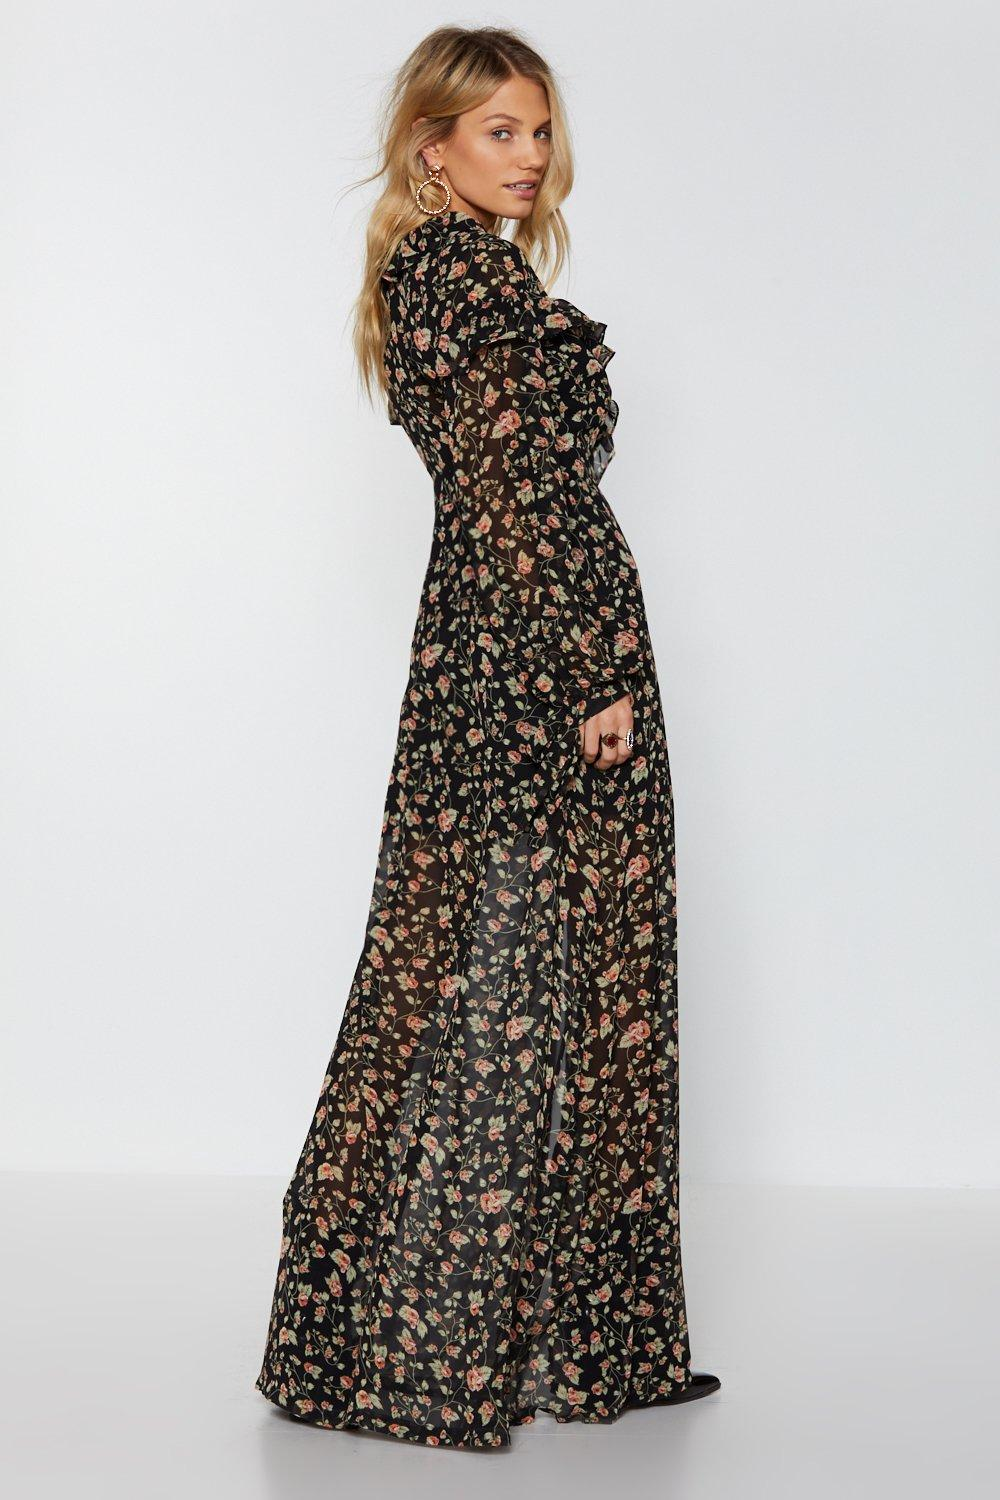 9e9f5433f60 Womens Black Rooting For You Floral Maxi Dress. Hover to zoom